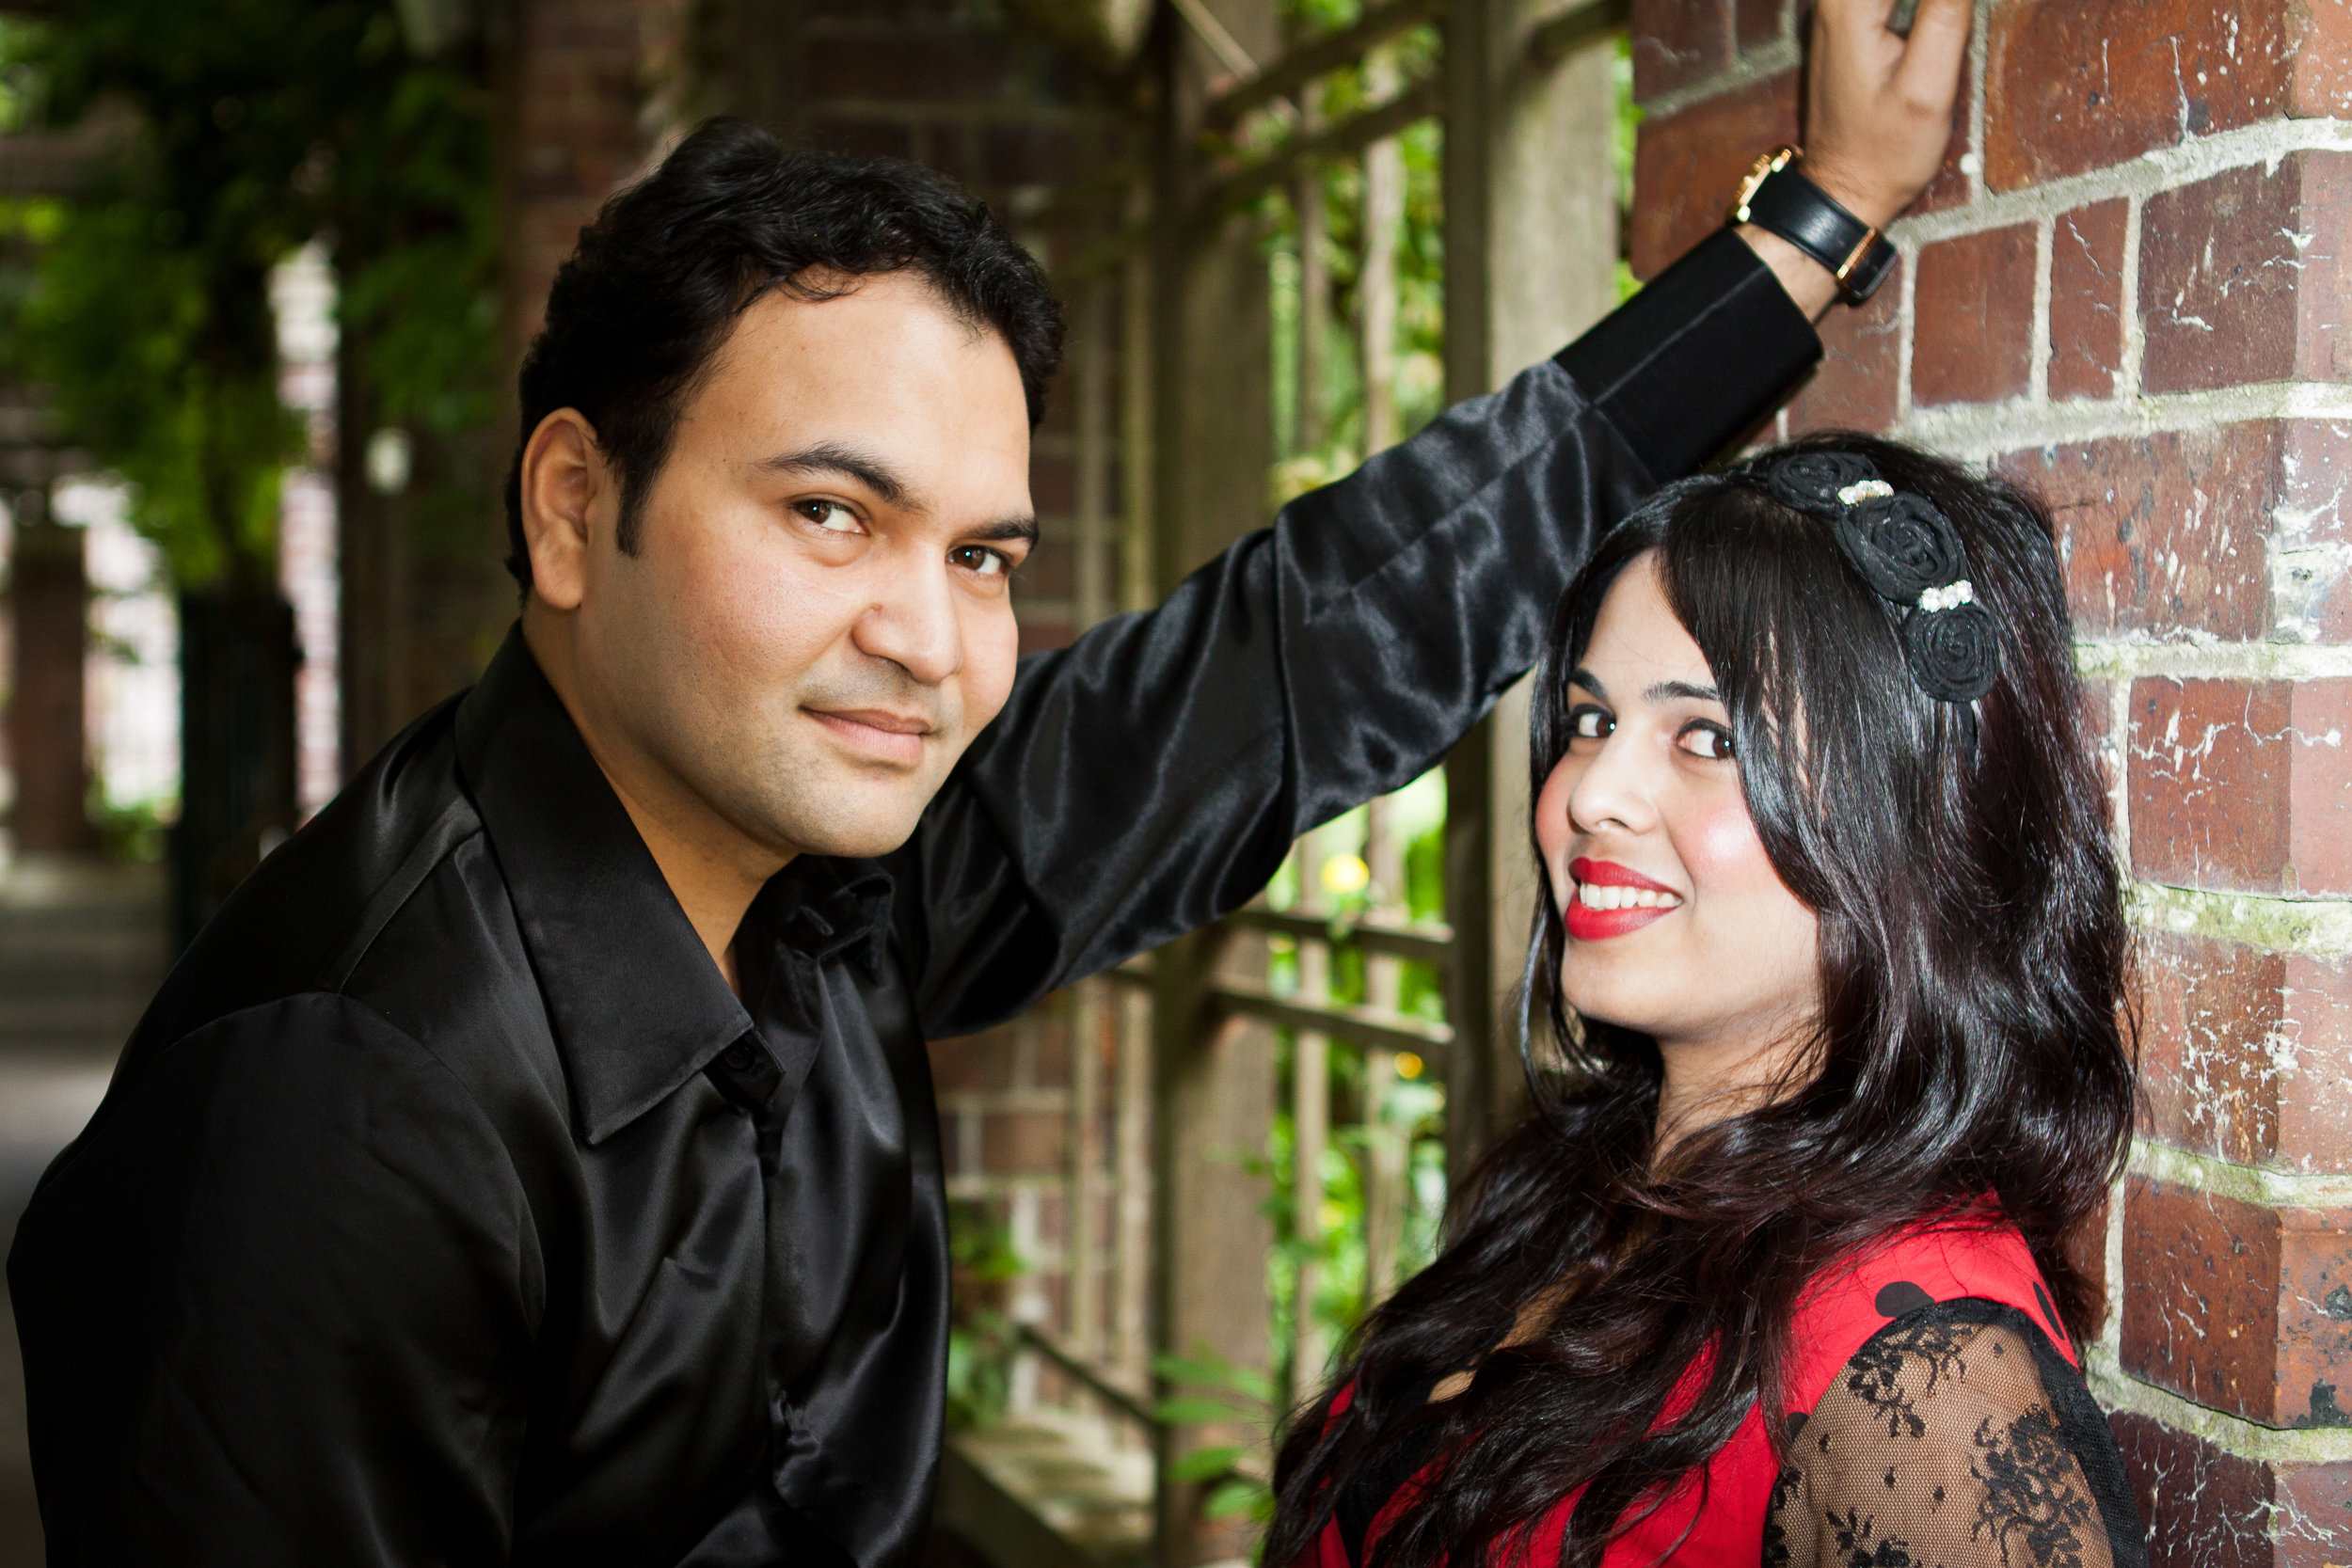 SHWETA & SUJIT - COUPLE PORTRAITS